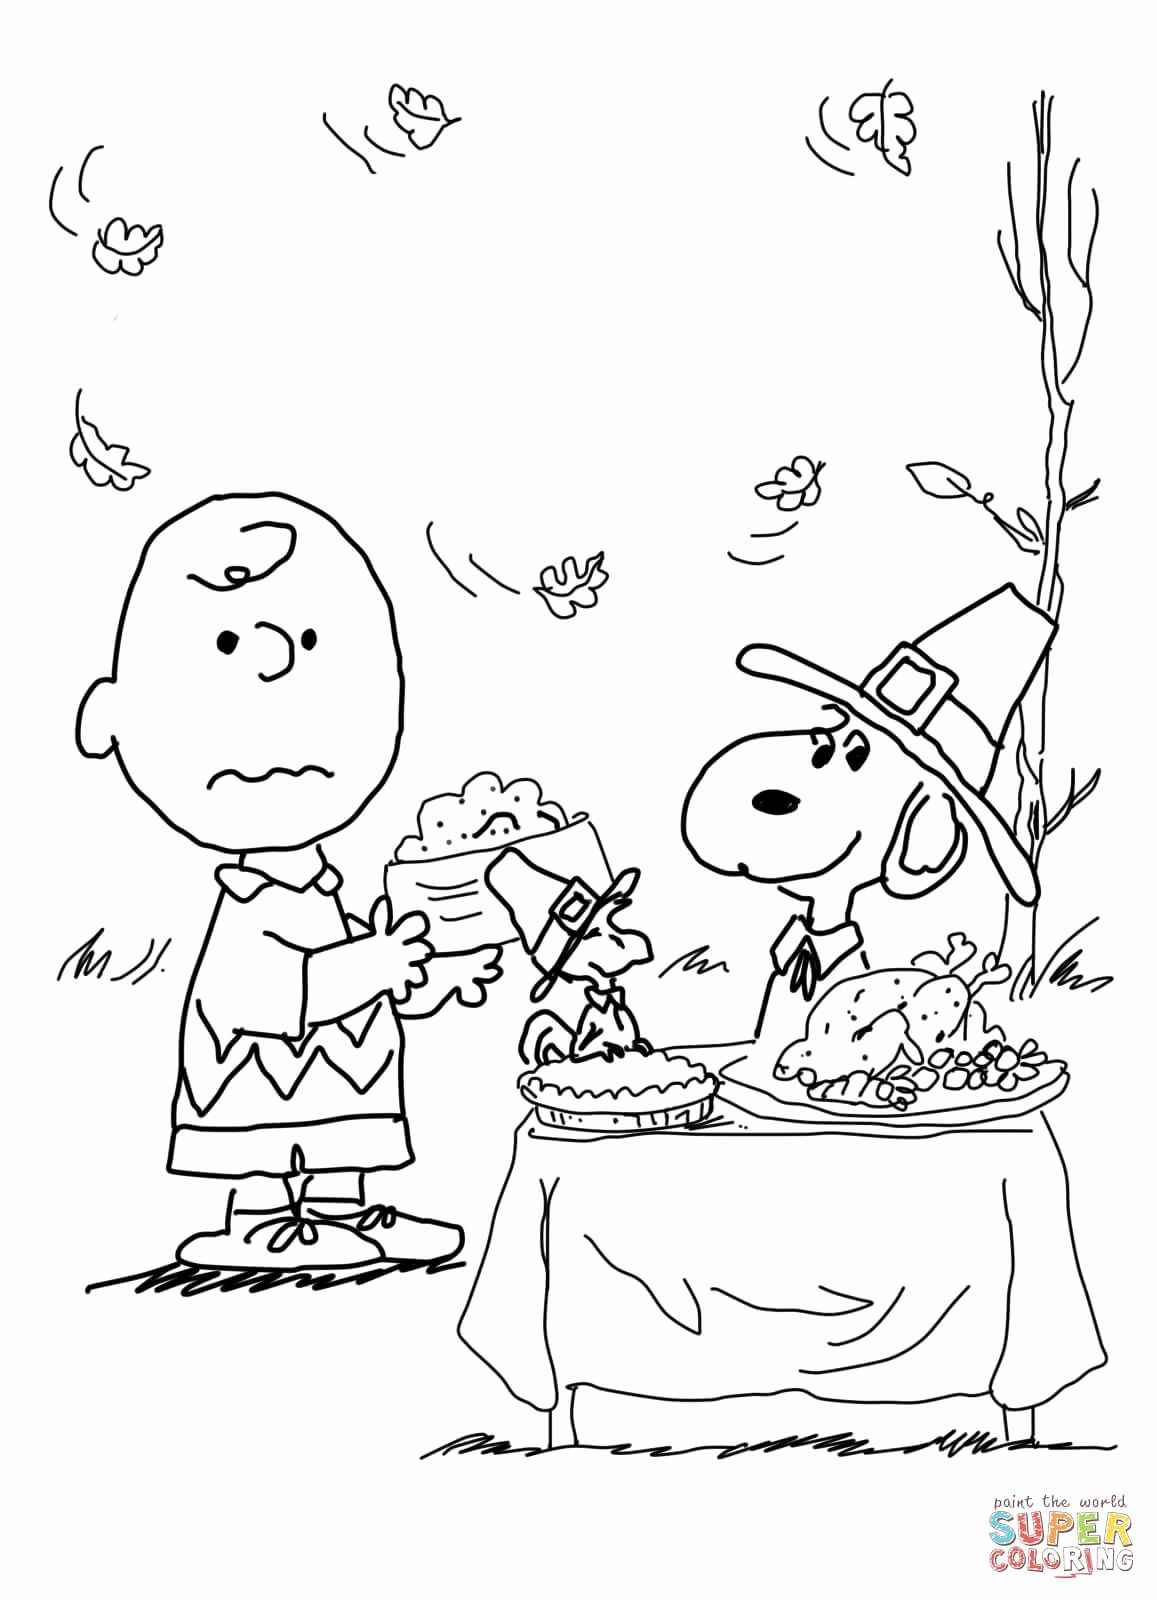 Coloring Pages For Kids Fall Charlie Brown In 2020 Thanksgiving Color Charlie Brown Thanksgiving Free Thanksgiving Coloring Pages